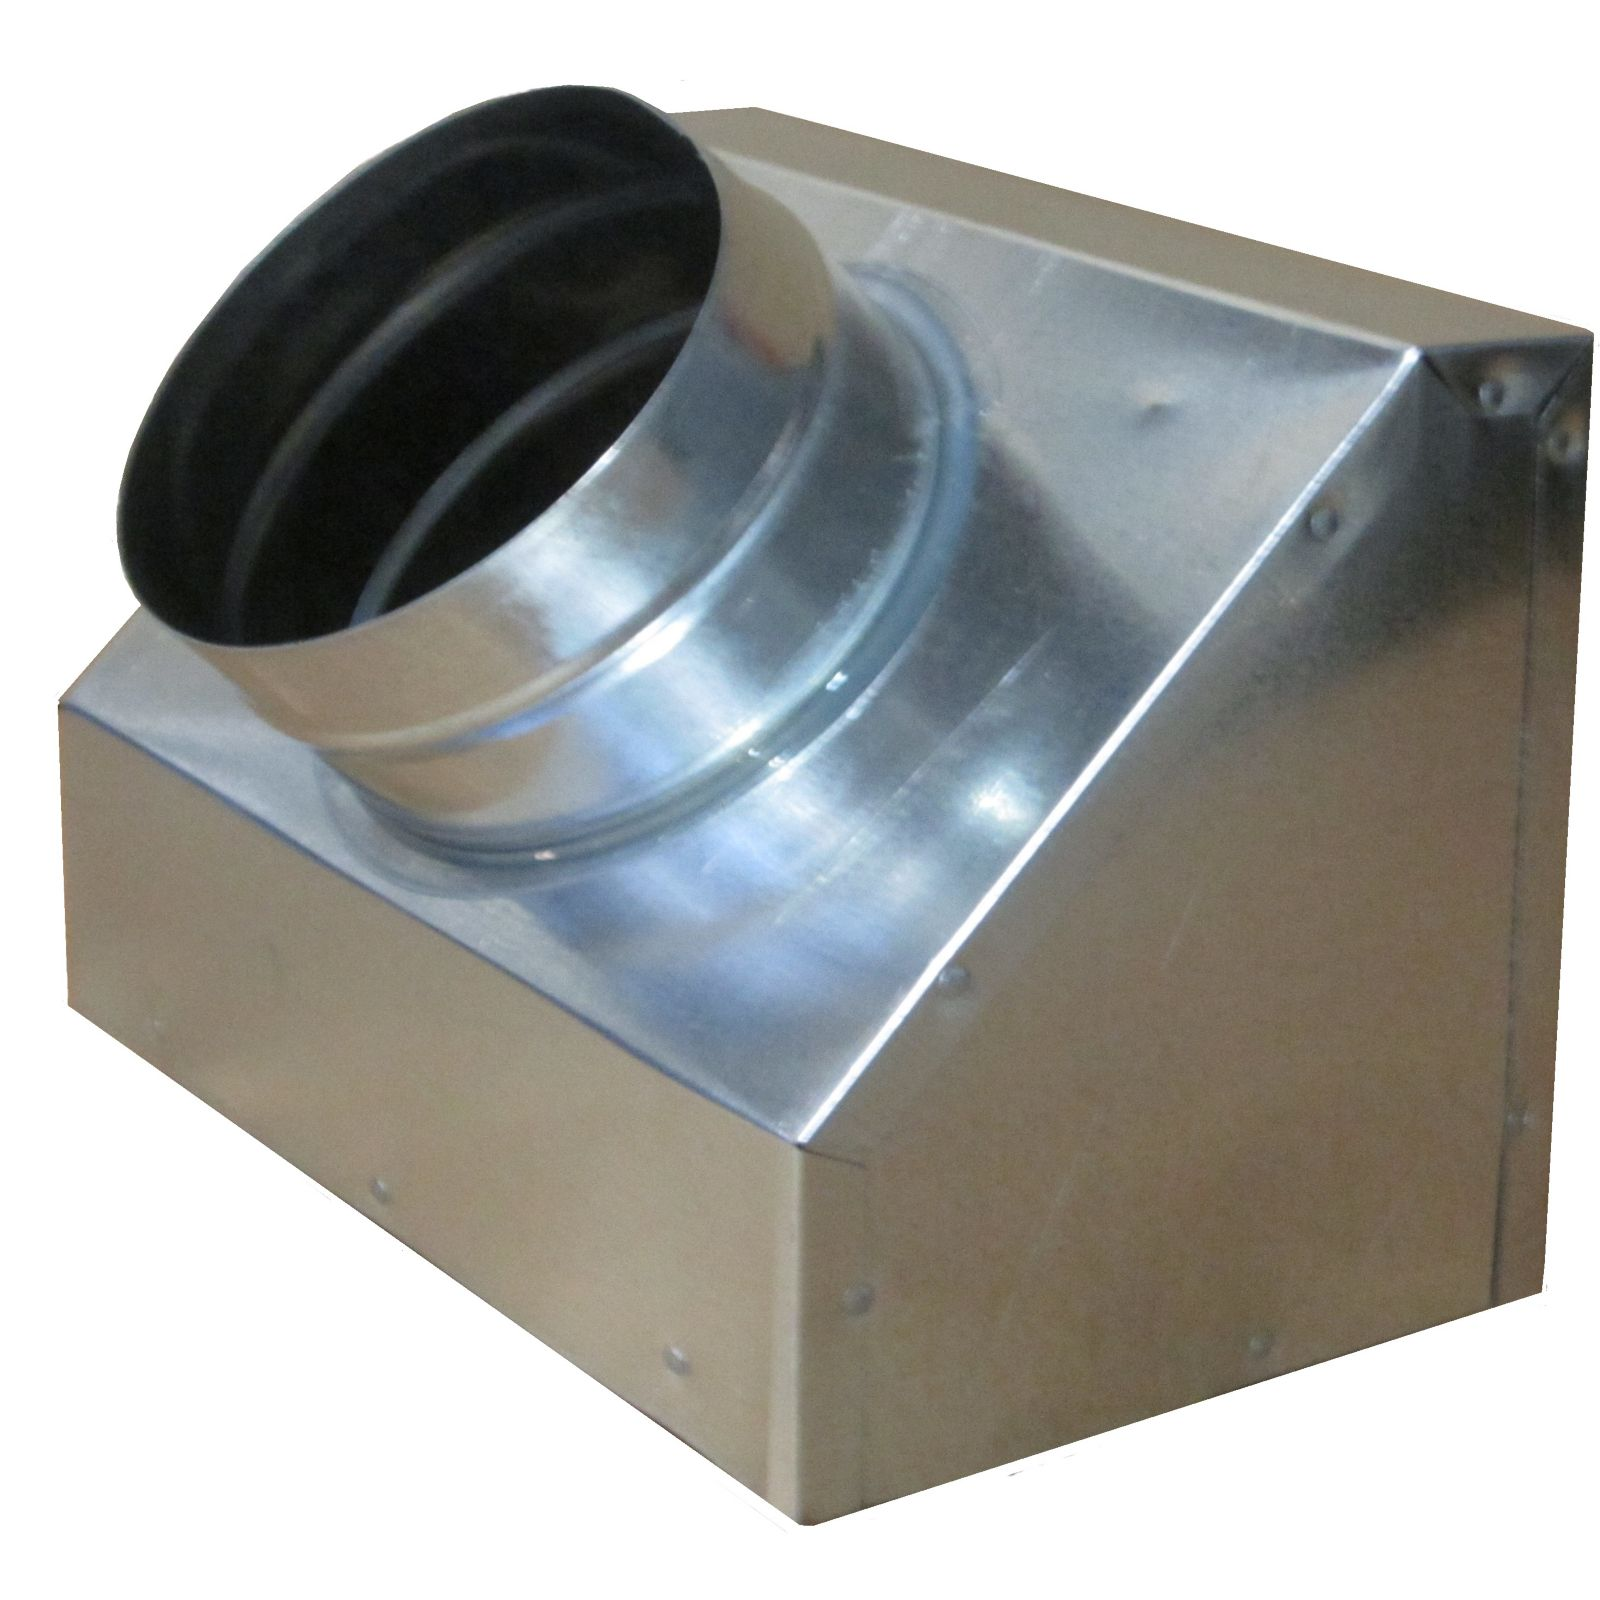 "Snap-Rite 10X06X063685FS - Insulated 45a° Slant Register Box, With Flange, 8 1/2"" Deep, 10"" x 6"" x 6"" - R6"